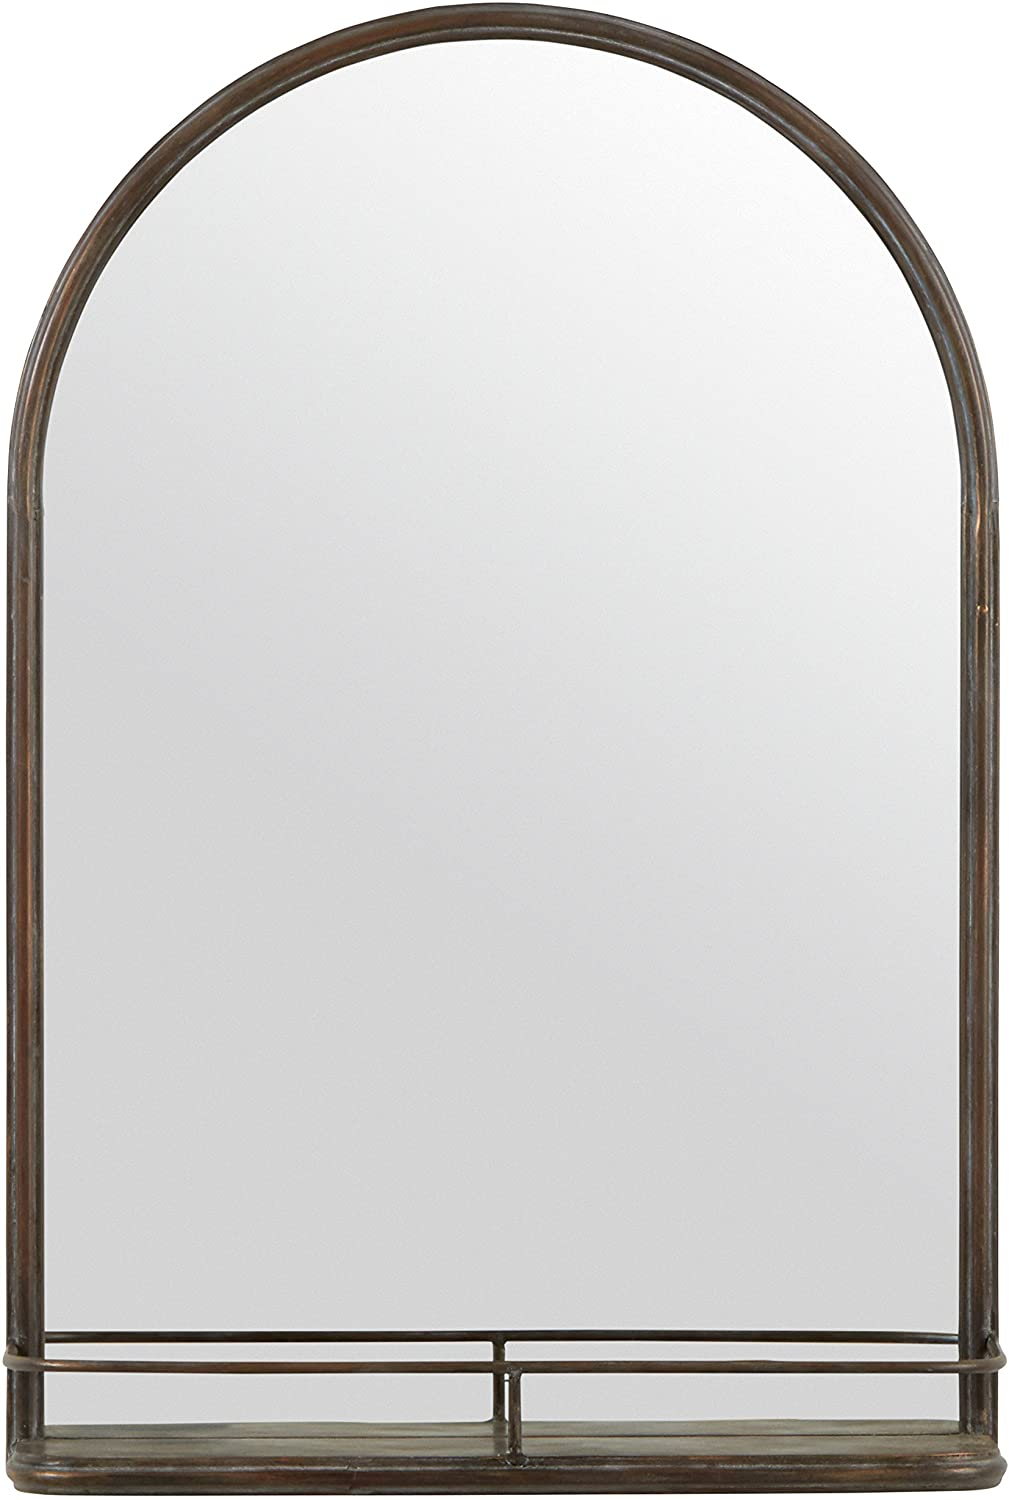 Amazon arched mirror stone and beam